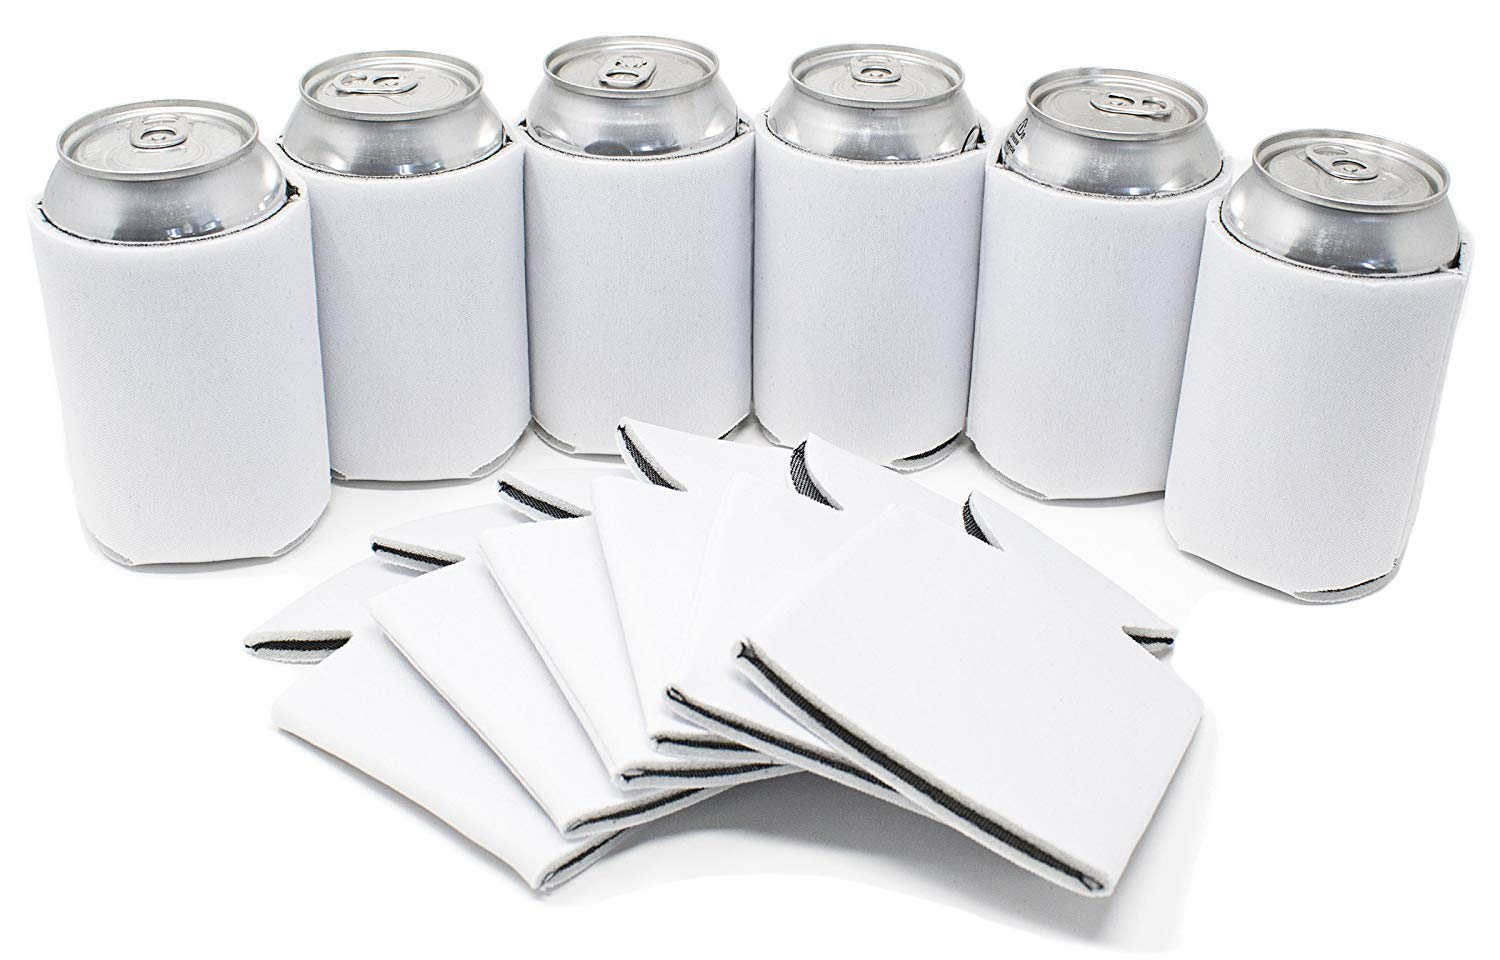 TahoeBay 25 Blank Beer Can Coolers, Plain Bulk Collapsible Soda Cover Coolies, DIY Personalized Sublimation Sleeves for Weddings, Bachelorette Parties, Funny HTV Party Favors (White, 25)